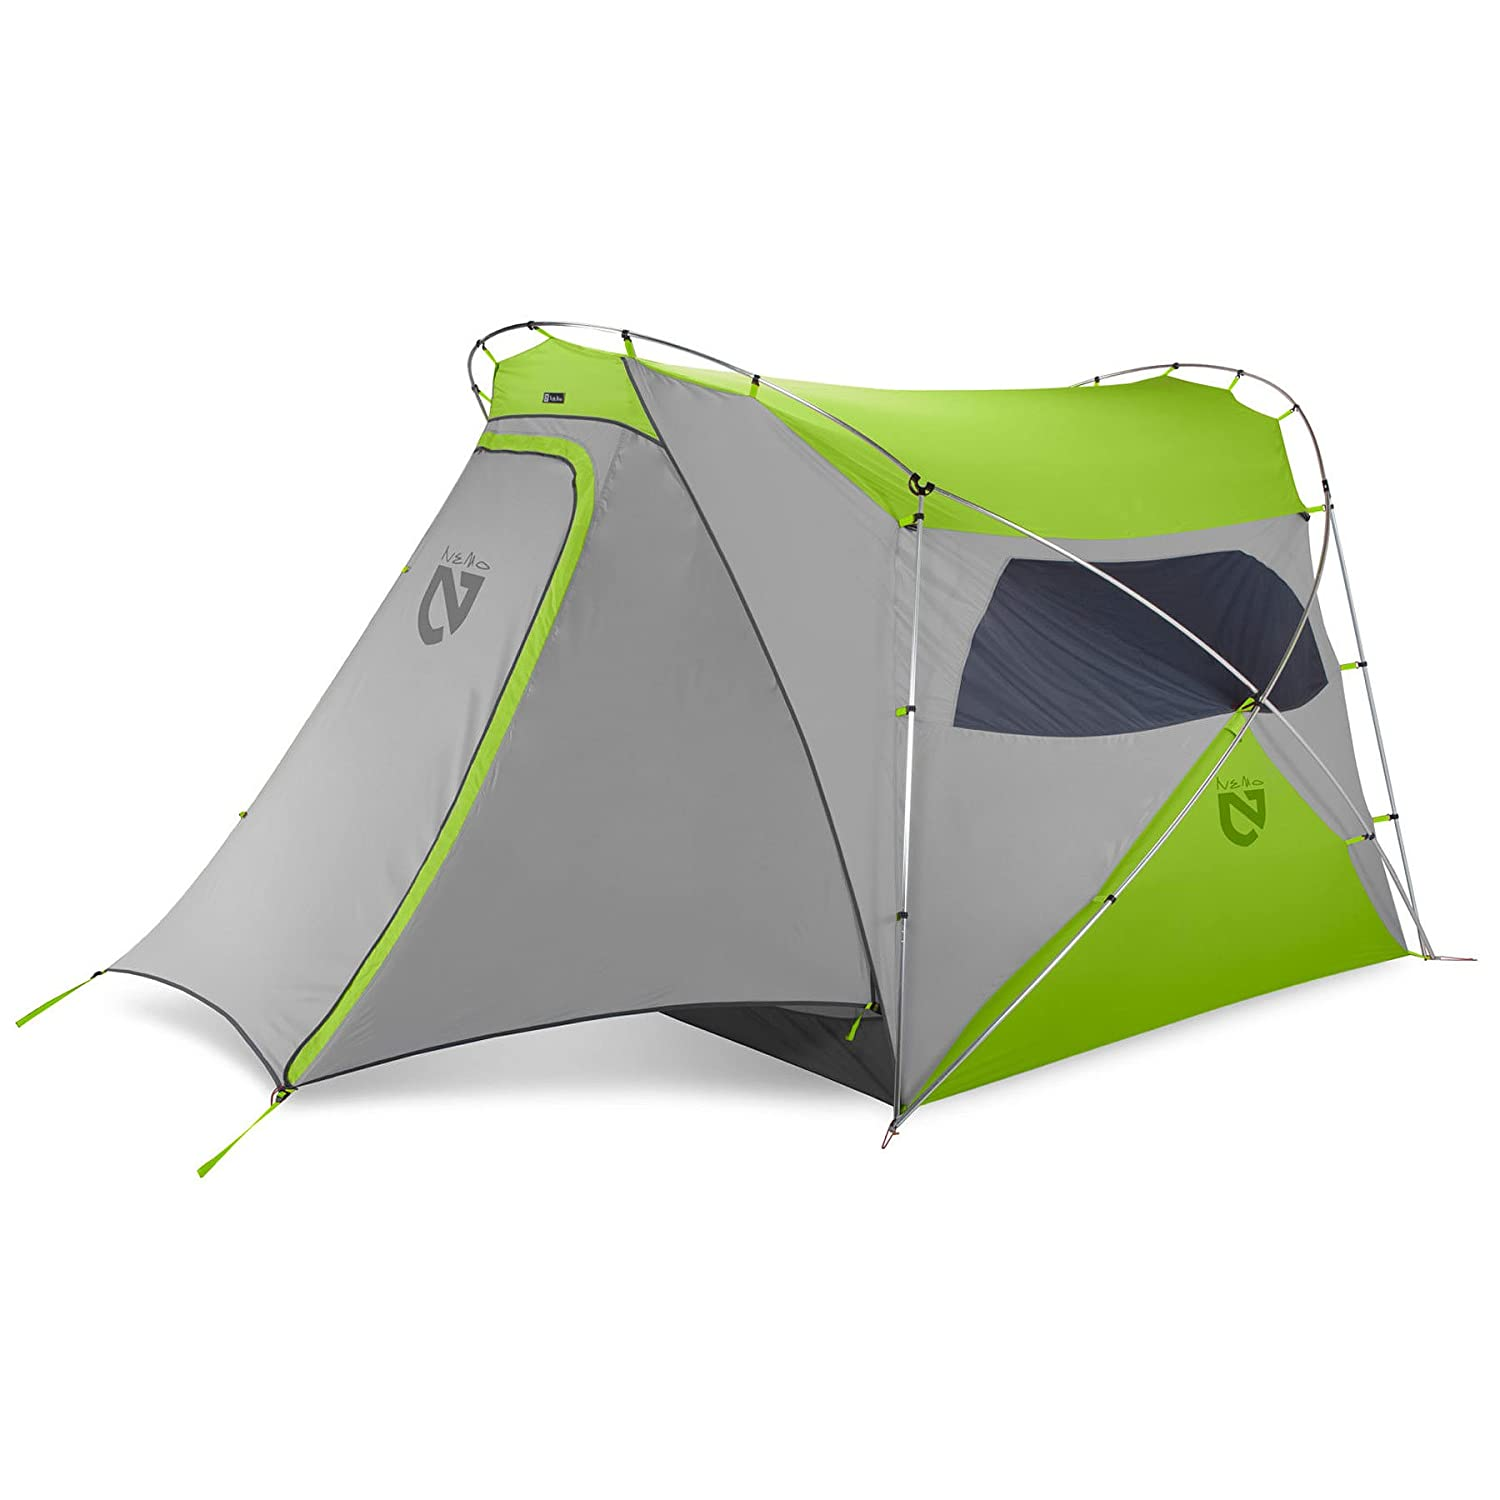 Review of Coleman 6-person 10' x 9' instant cabin family camping tent